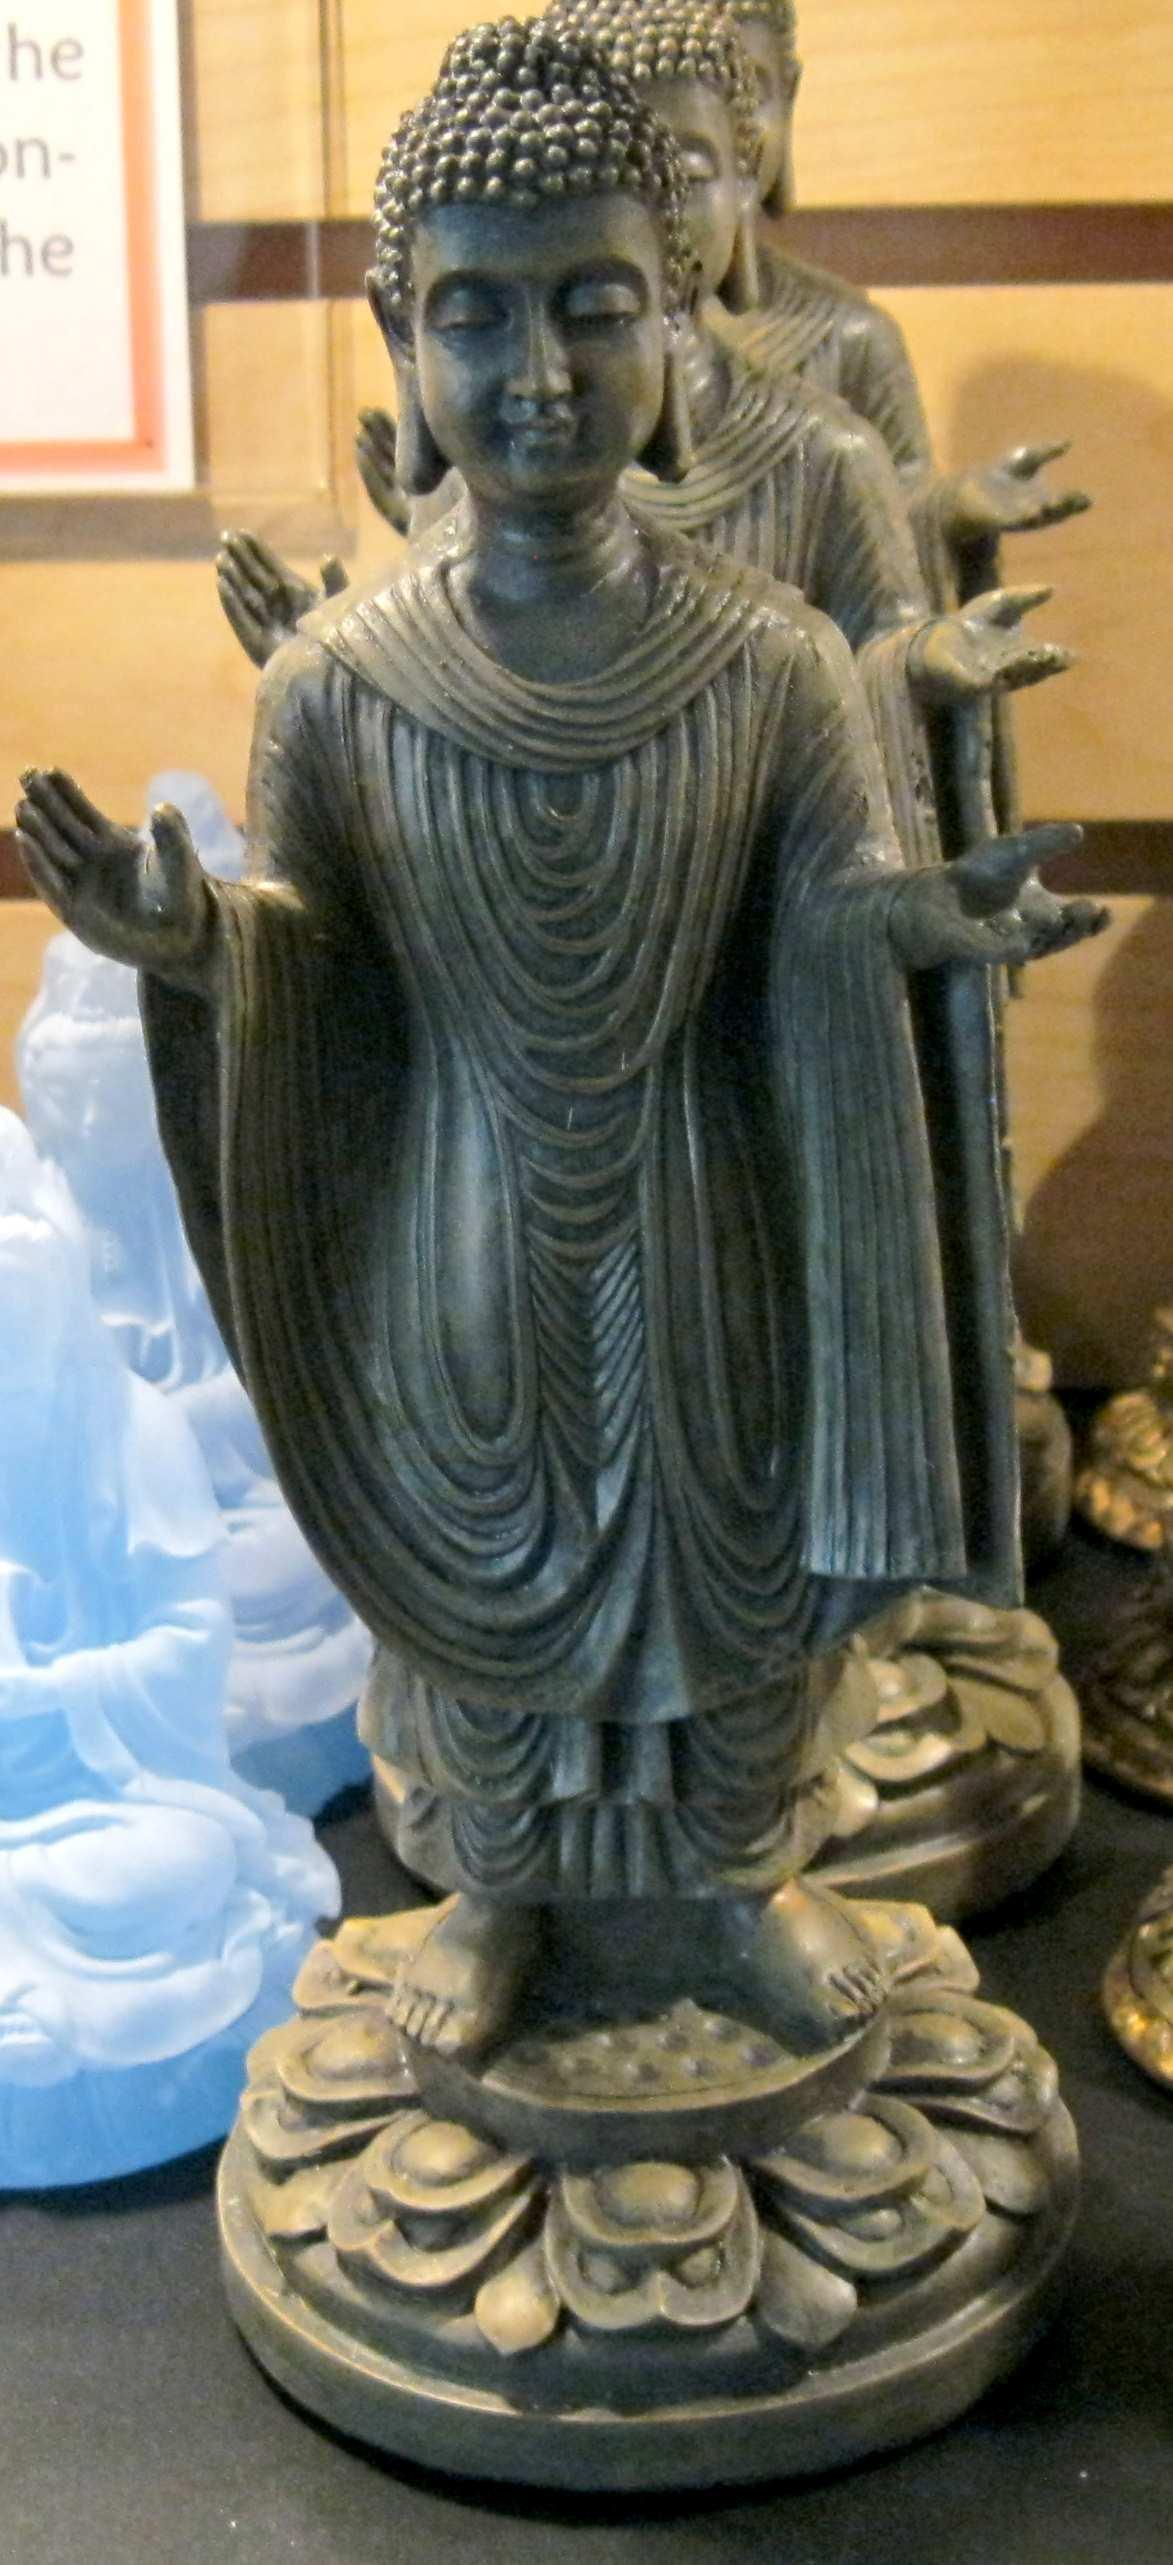 OPen hands Blessing Buddha 8 inch statue